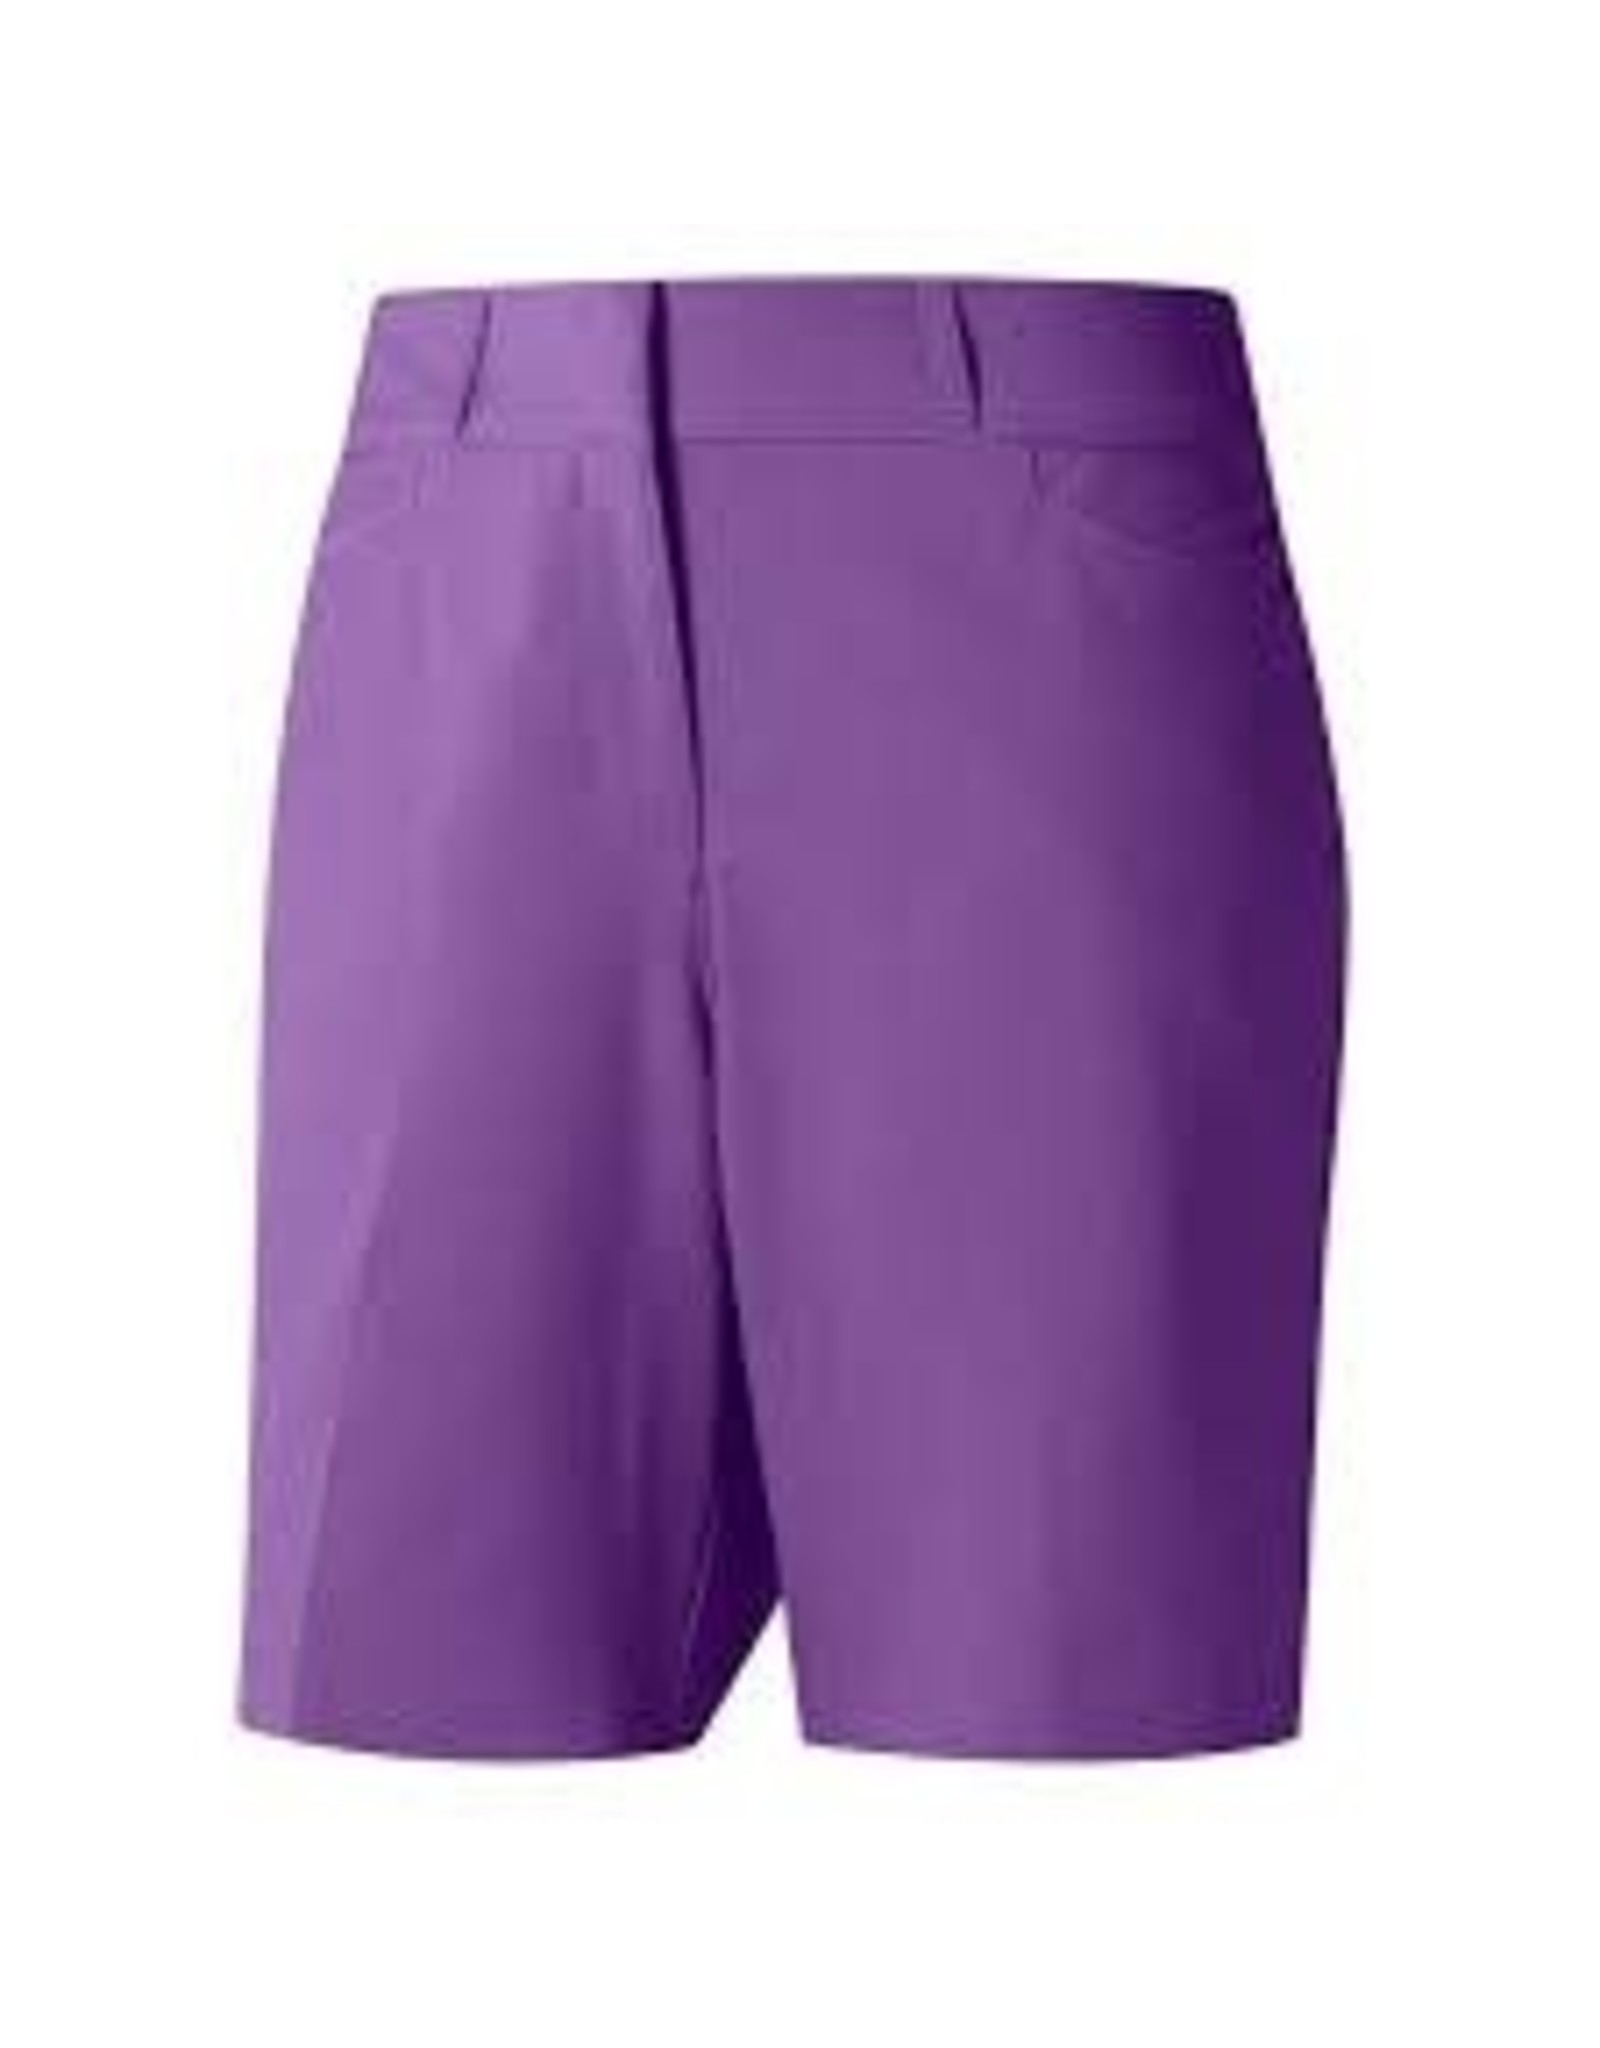 Adidas Adidas Women's Shorts (DP5915)